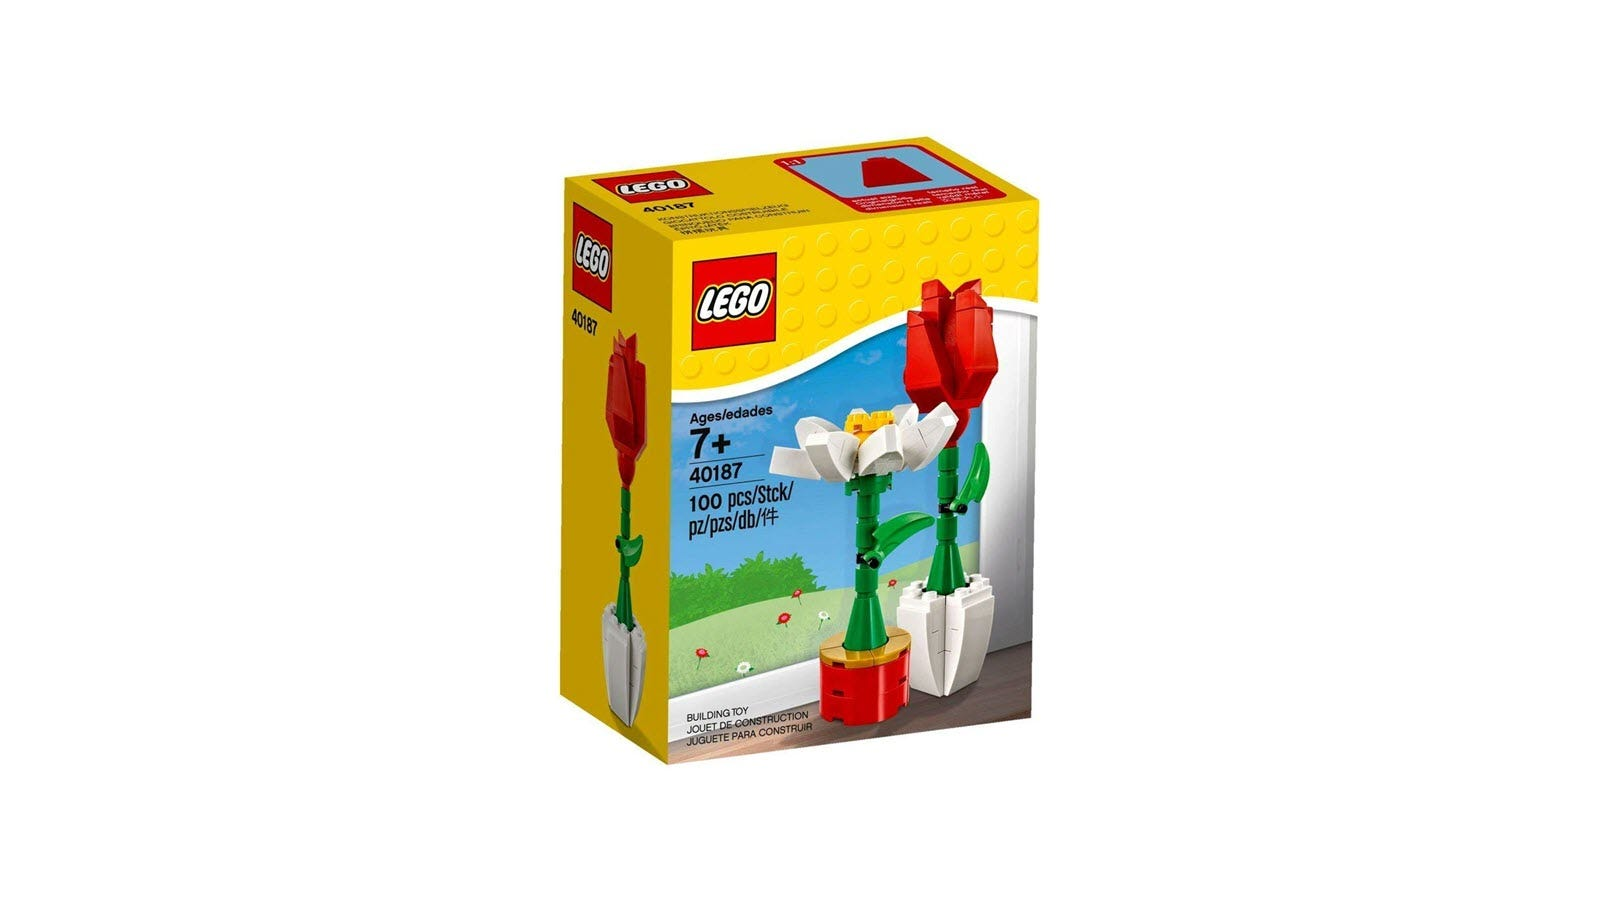 A LEGO box with a LEGO rose and daisy in front of a painted outdoor scene.